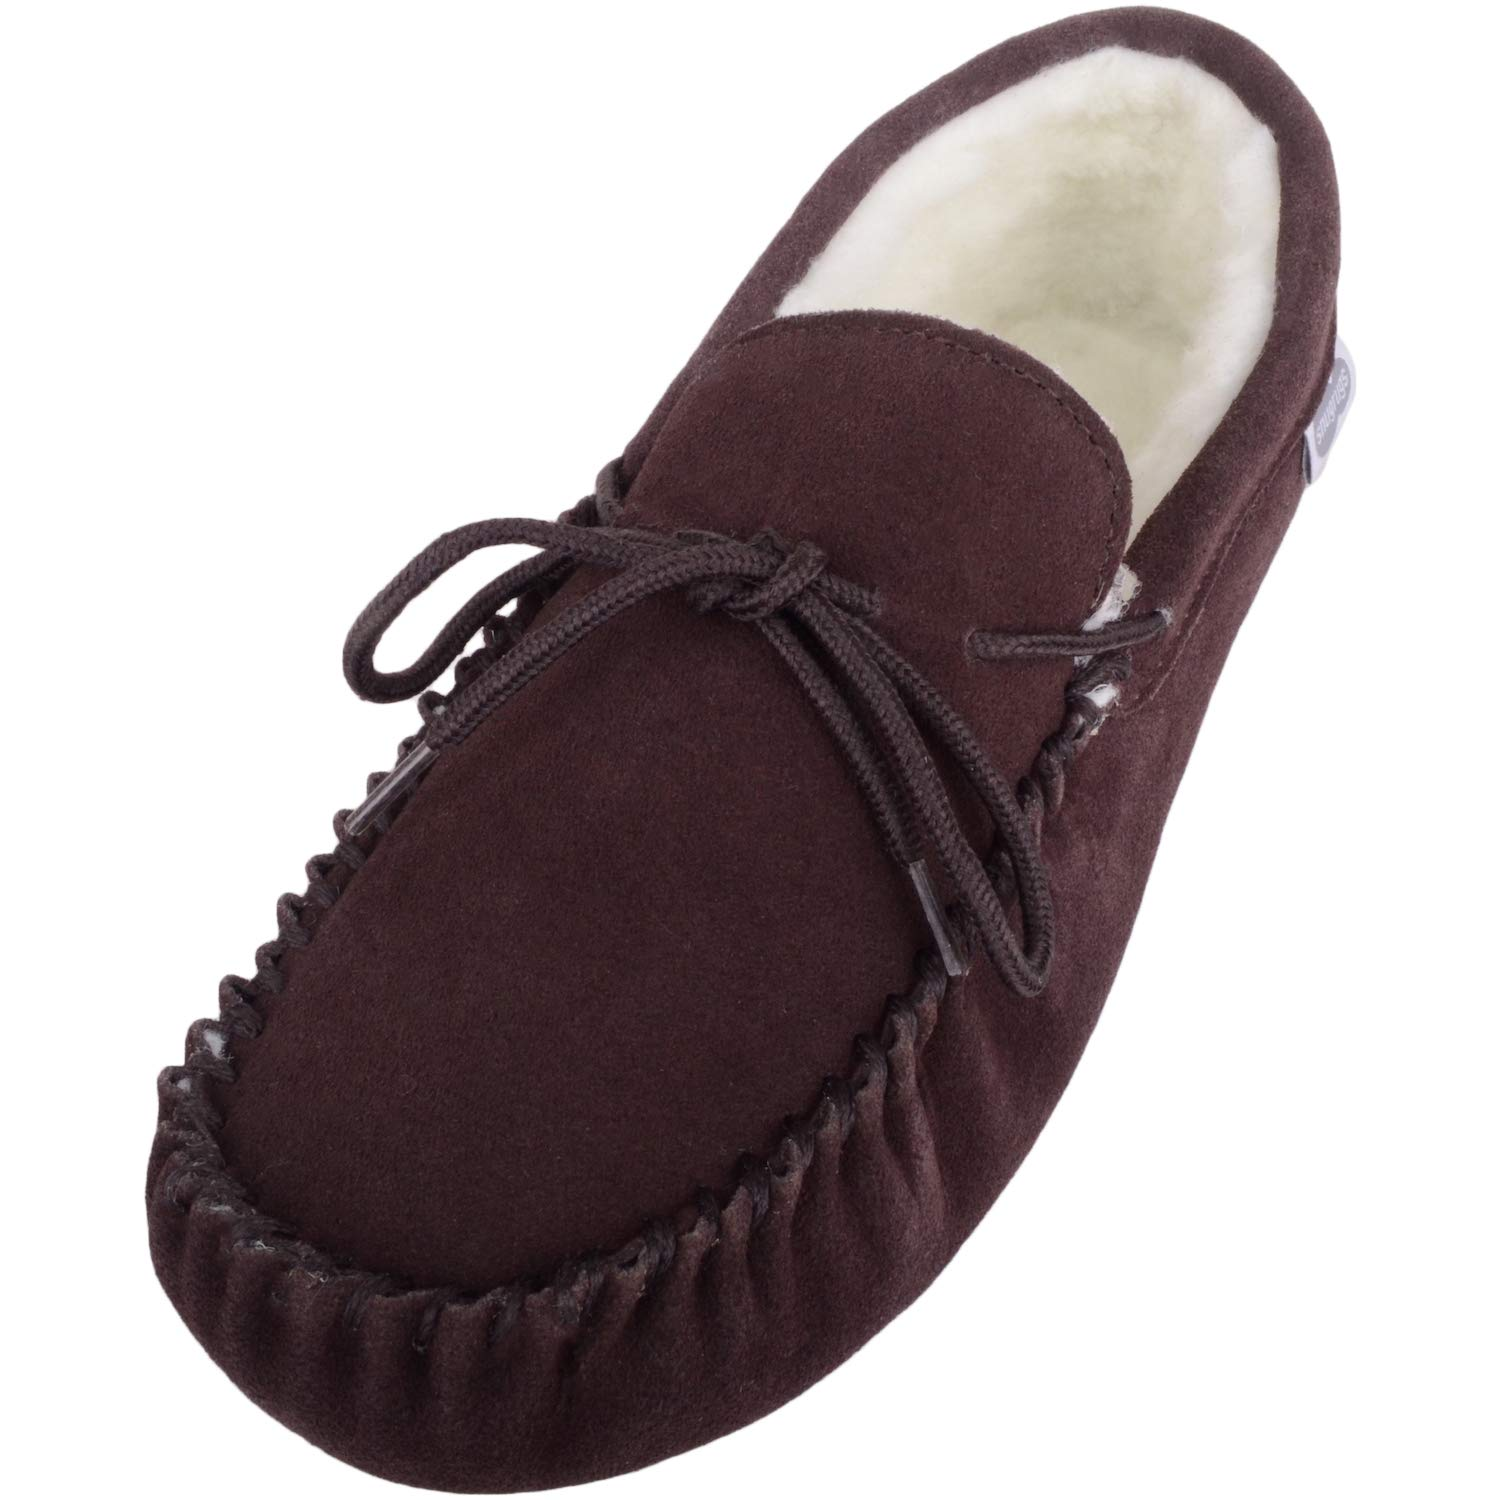 a2d9caf8bddf7 Snugrugs Men's Suede Sheepskin Moccasin Slippers with Soft Sole